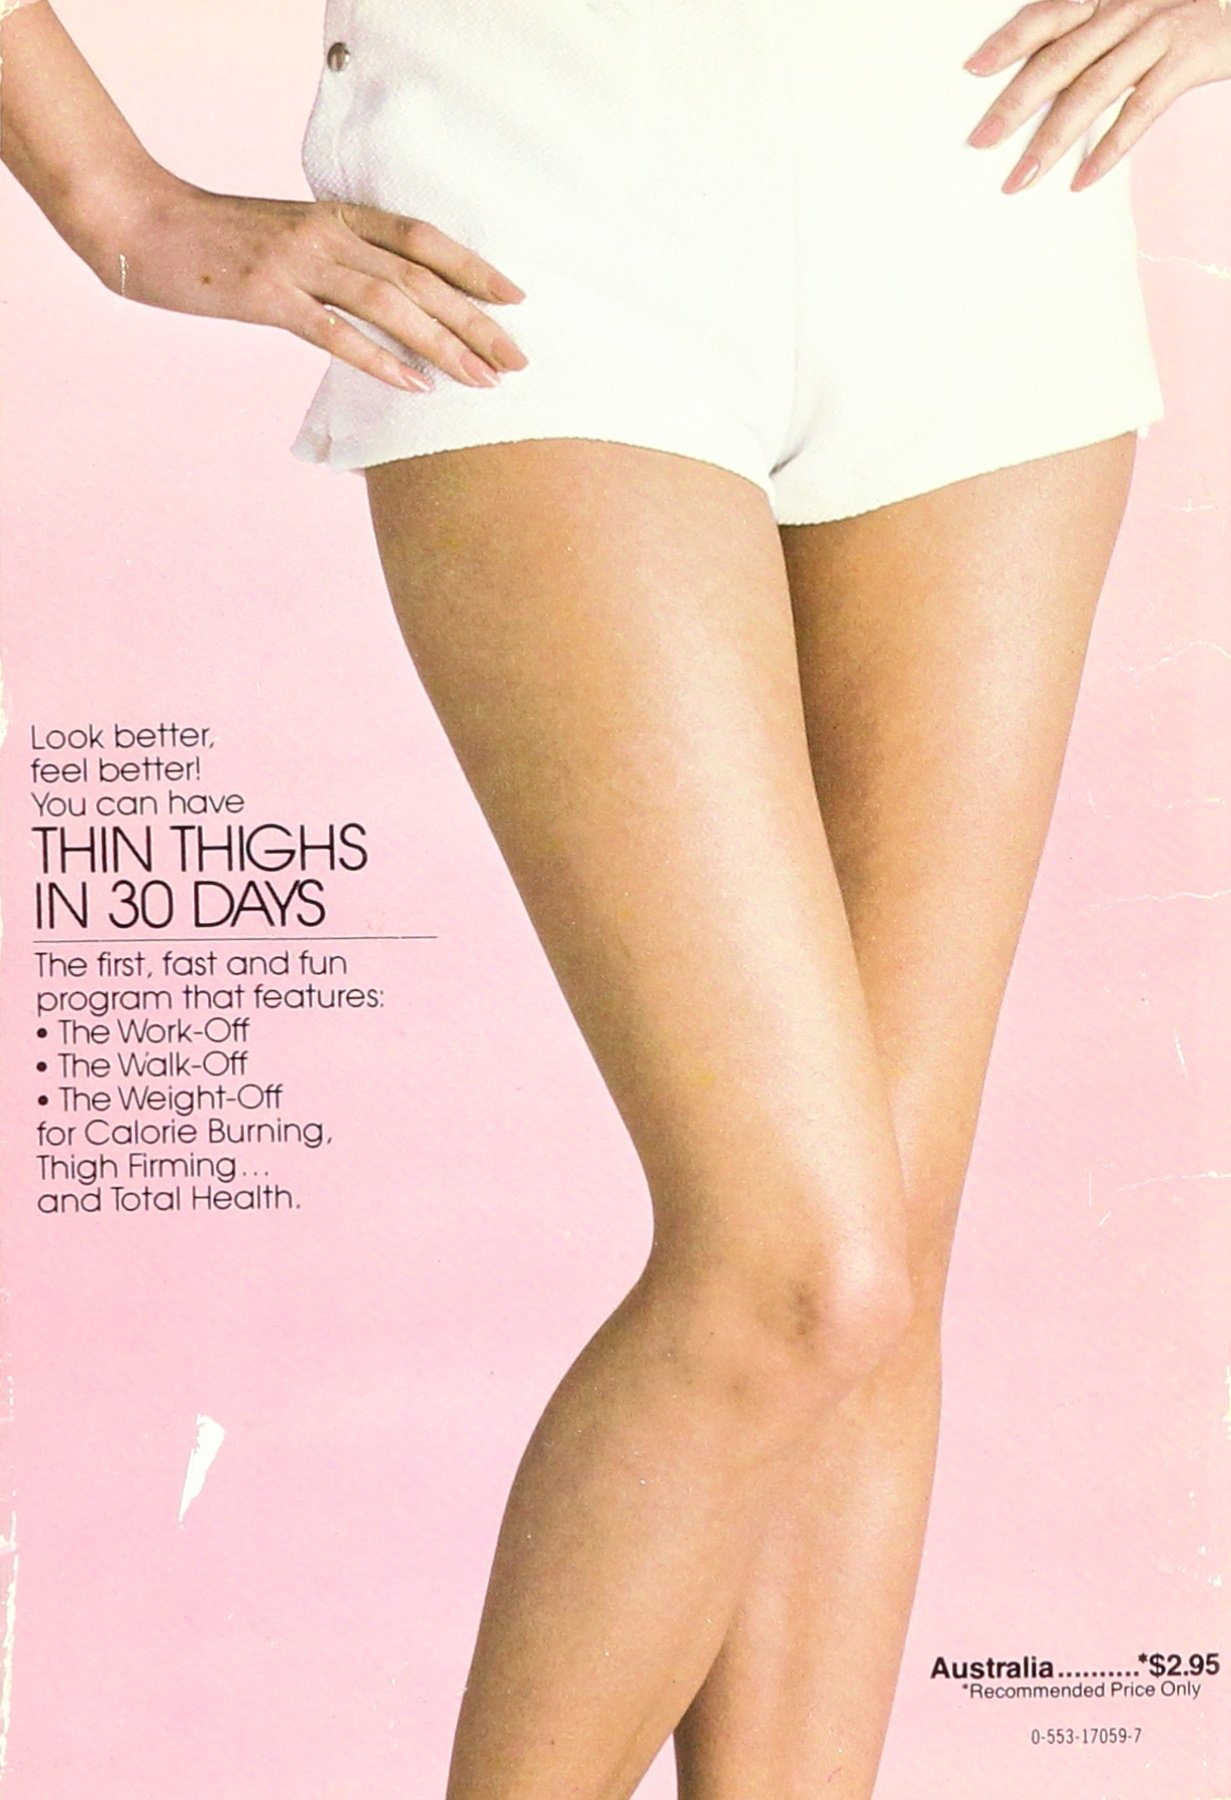 Thin thighs in 30 days wendy stehling louis falcone john olson thin thighs in 30 days wendy stehling louis falcone john olson 9780553014433 amazon books fandeluxe Gallery